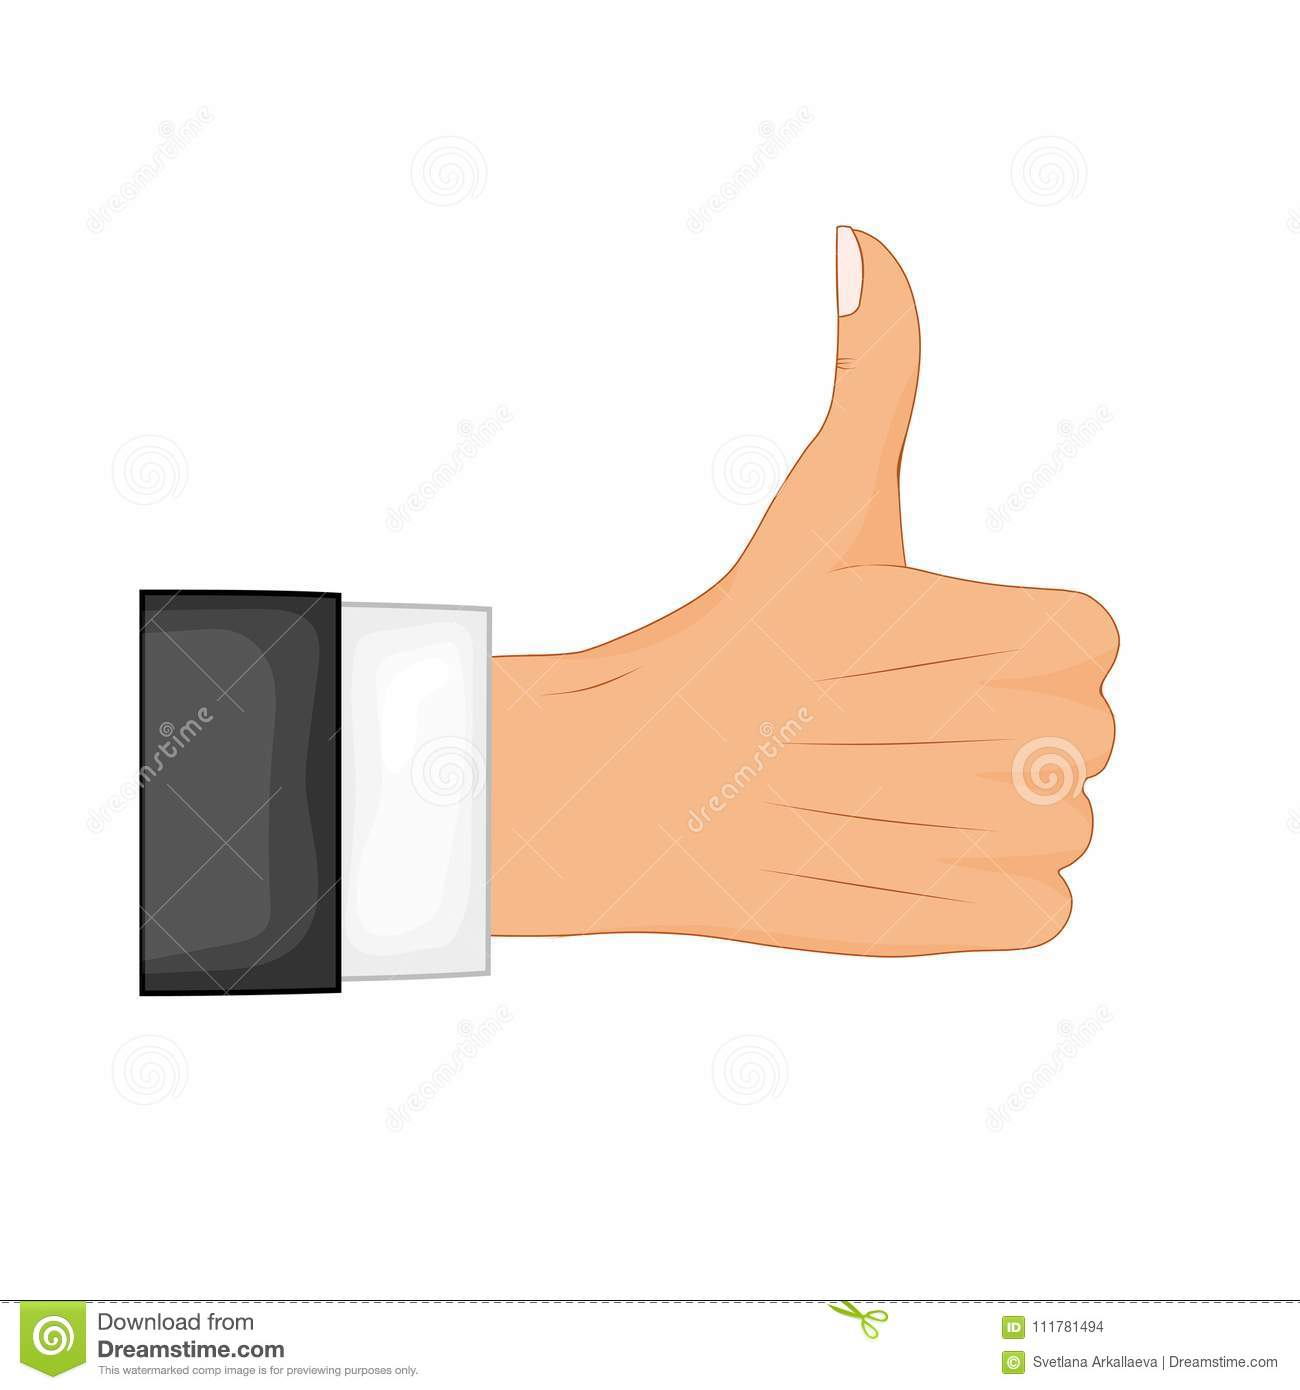 Hand thumb up sign on a white background. Vector illustration. Positive feedback, good gestures, like. Flat style vector